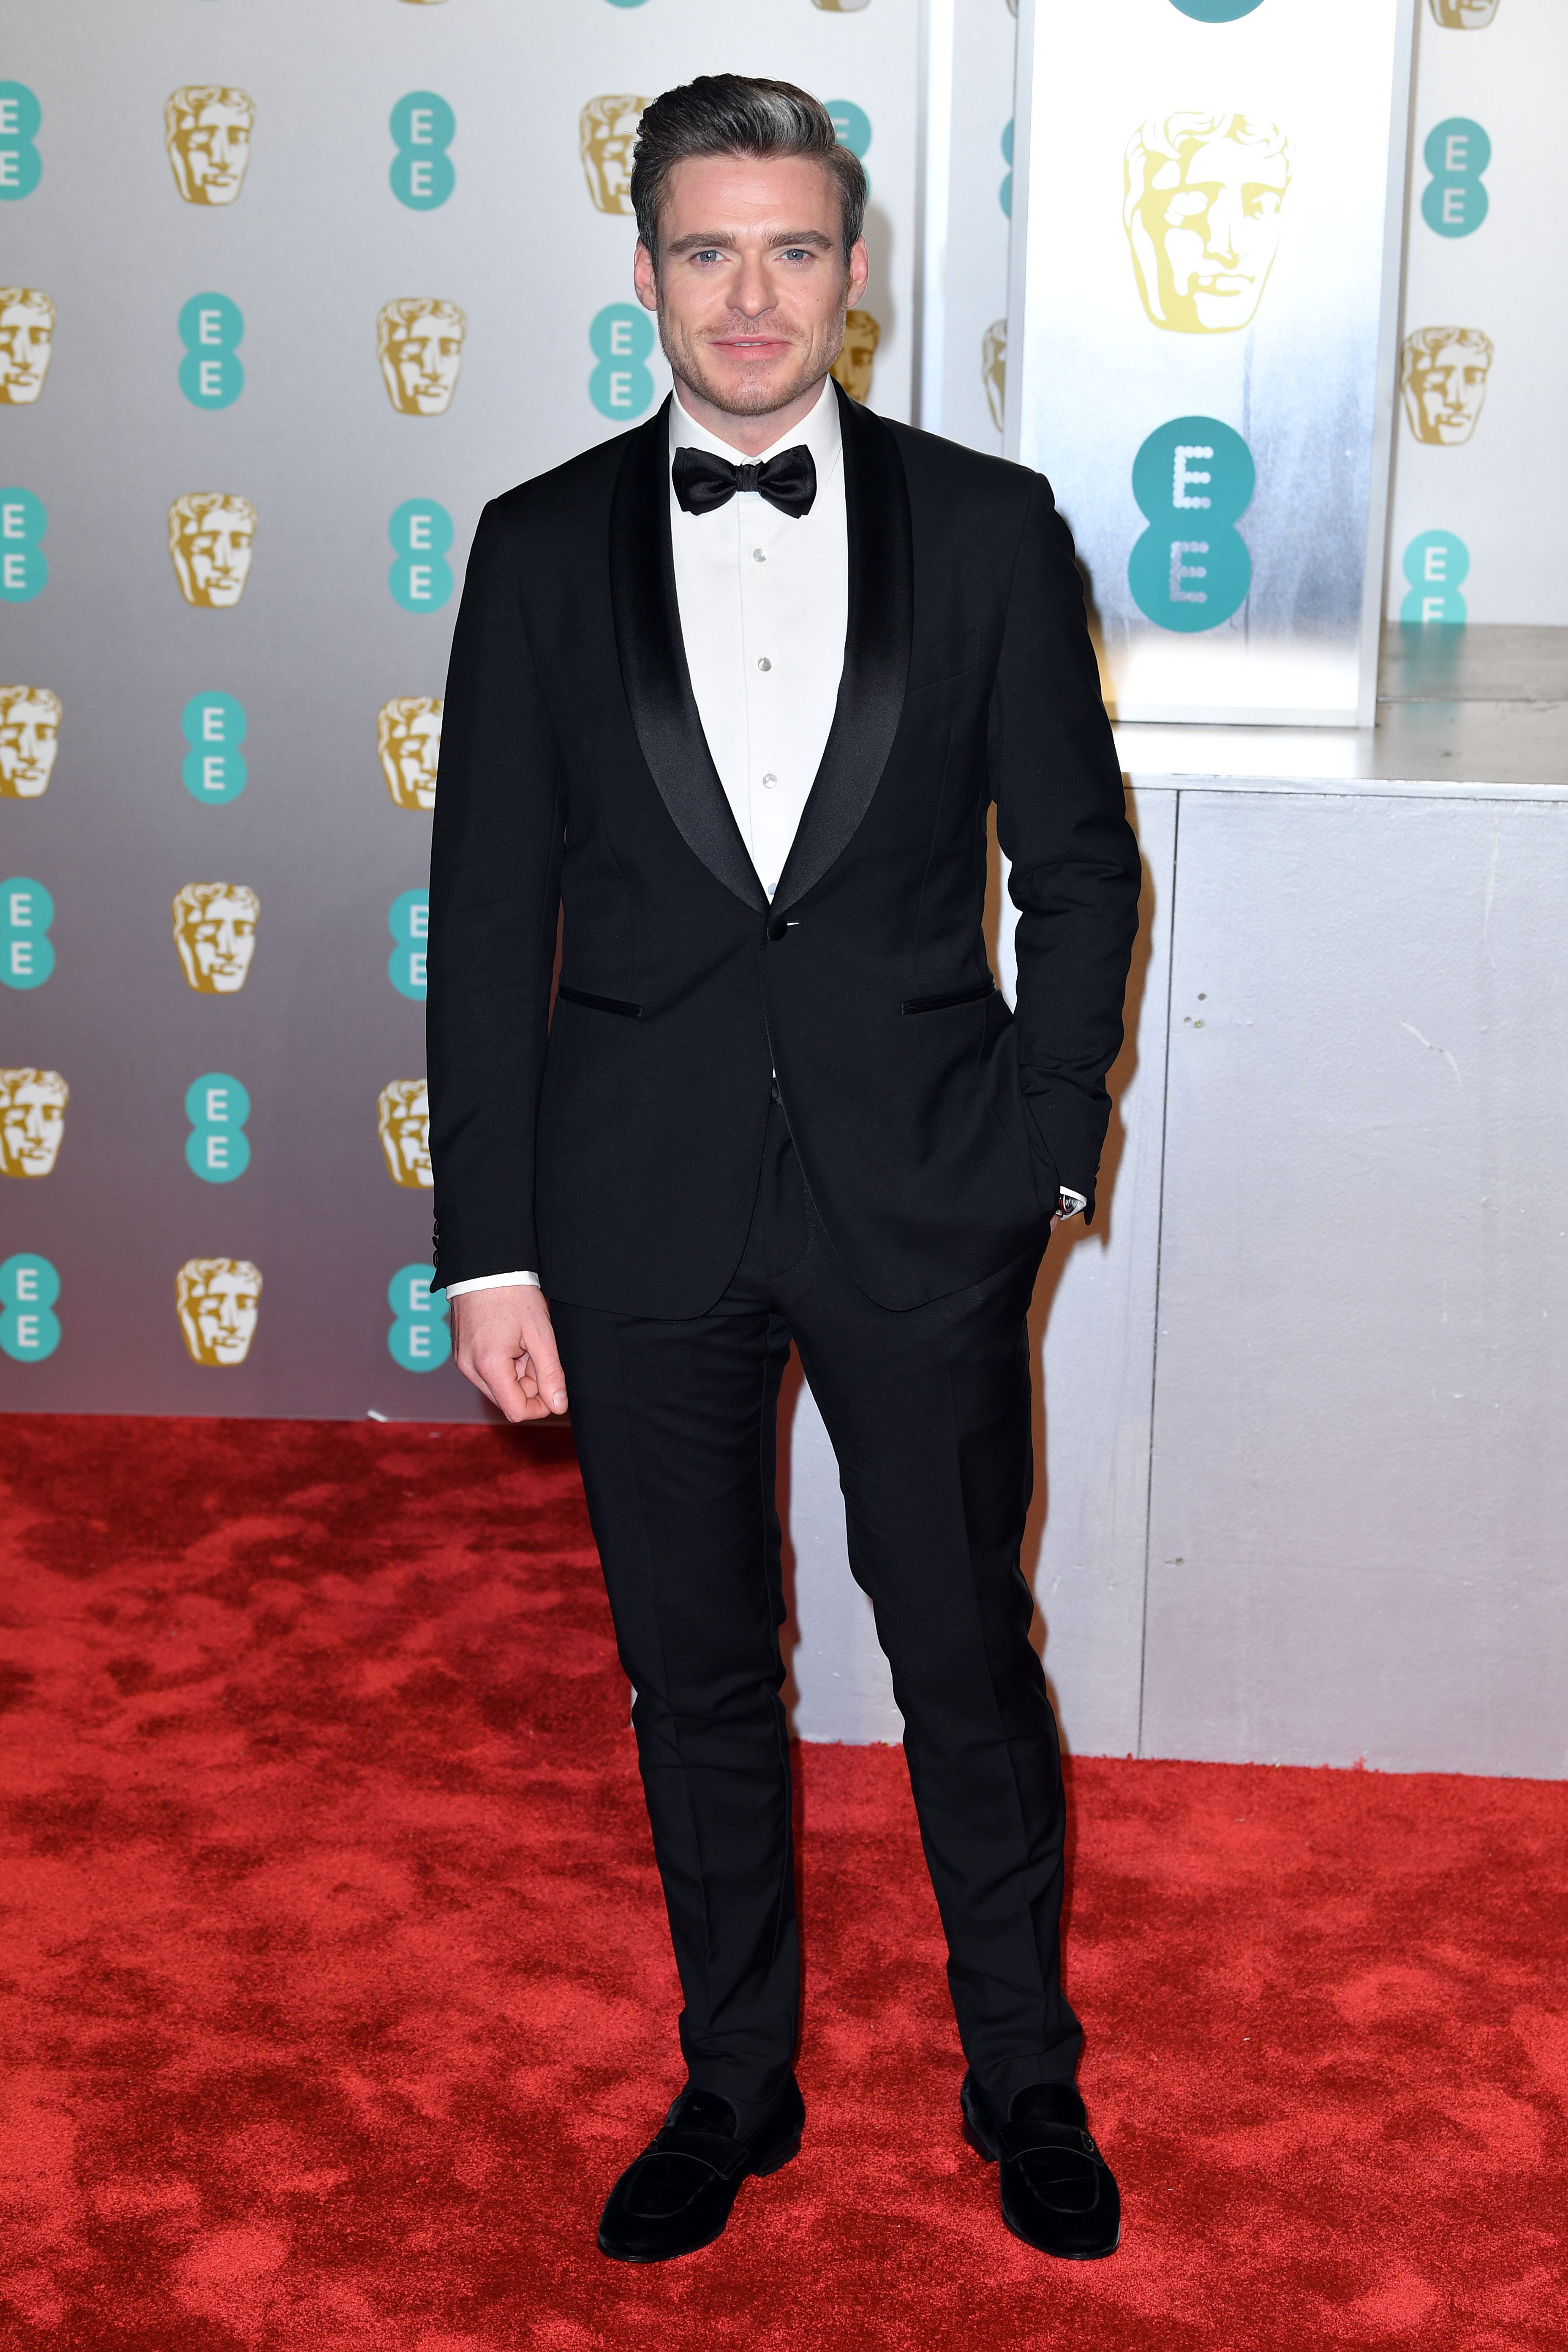 BAFTAs best-dressed